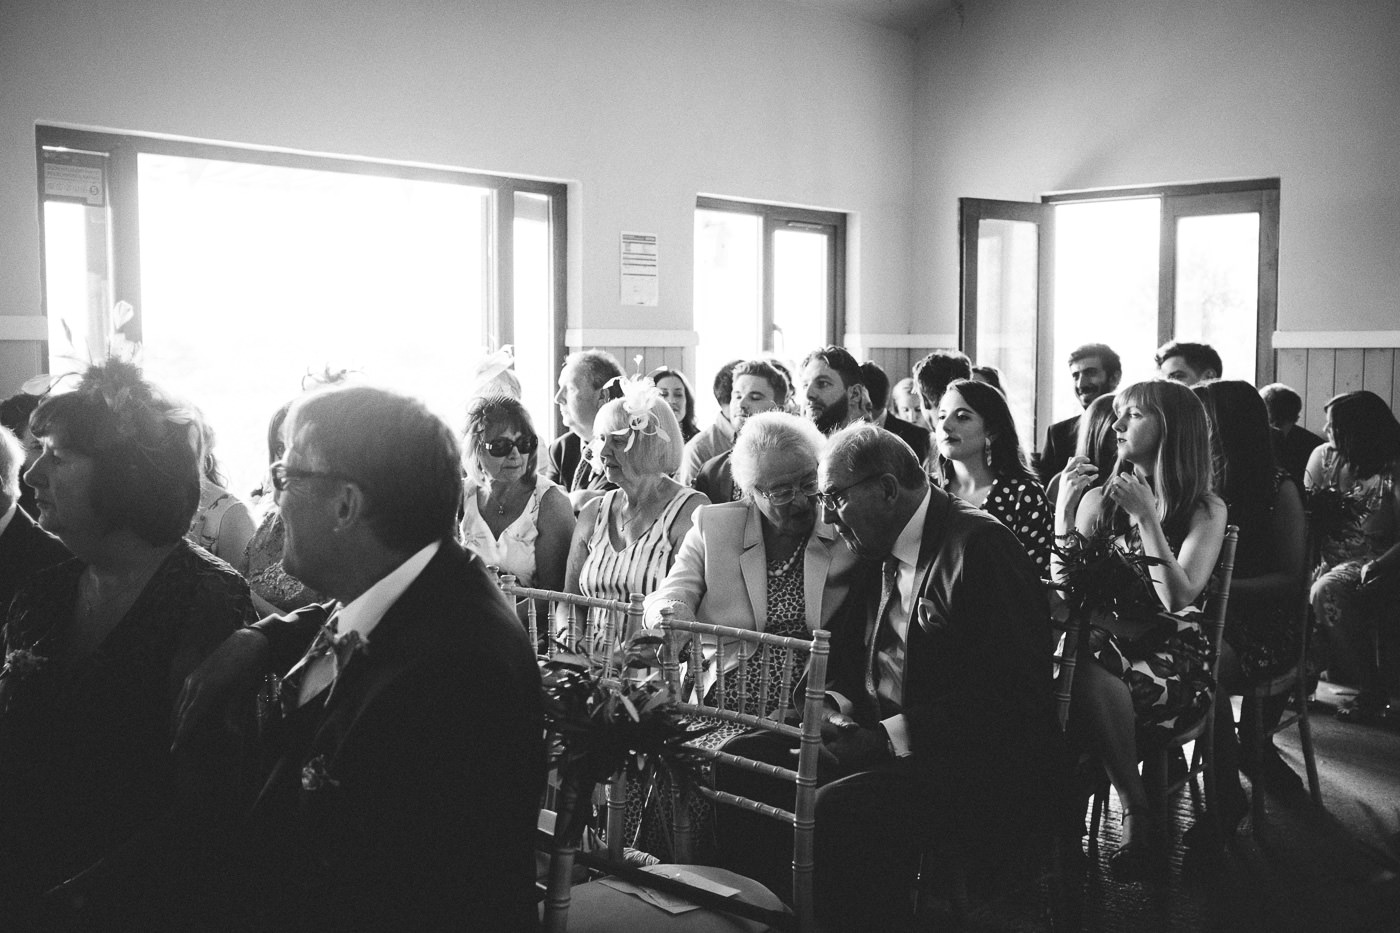 COWBRIDGE GLYNDWR VINEYARD WEDDING PHOTOGRAPHY CARDIFF SOUTH WALES 015